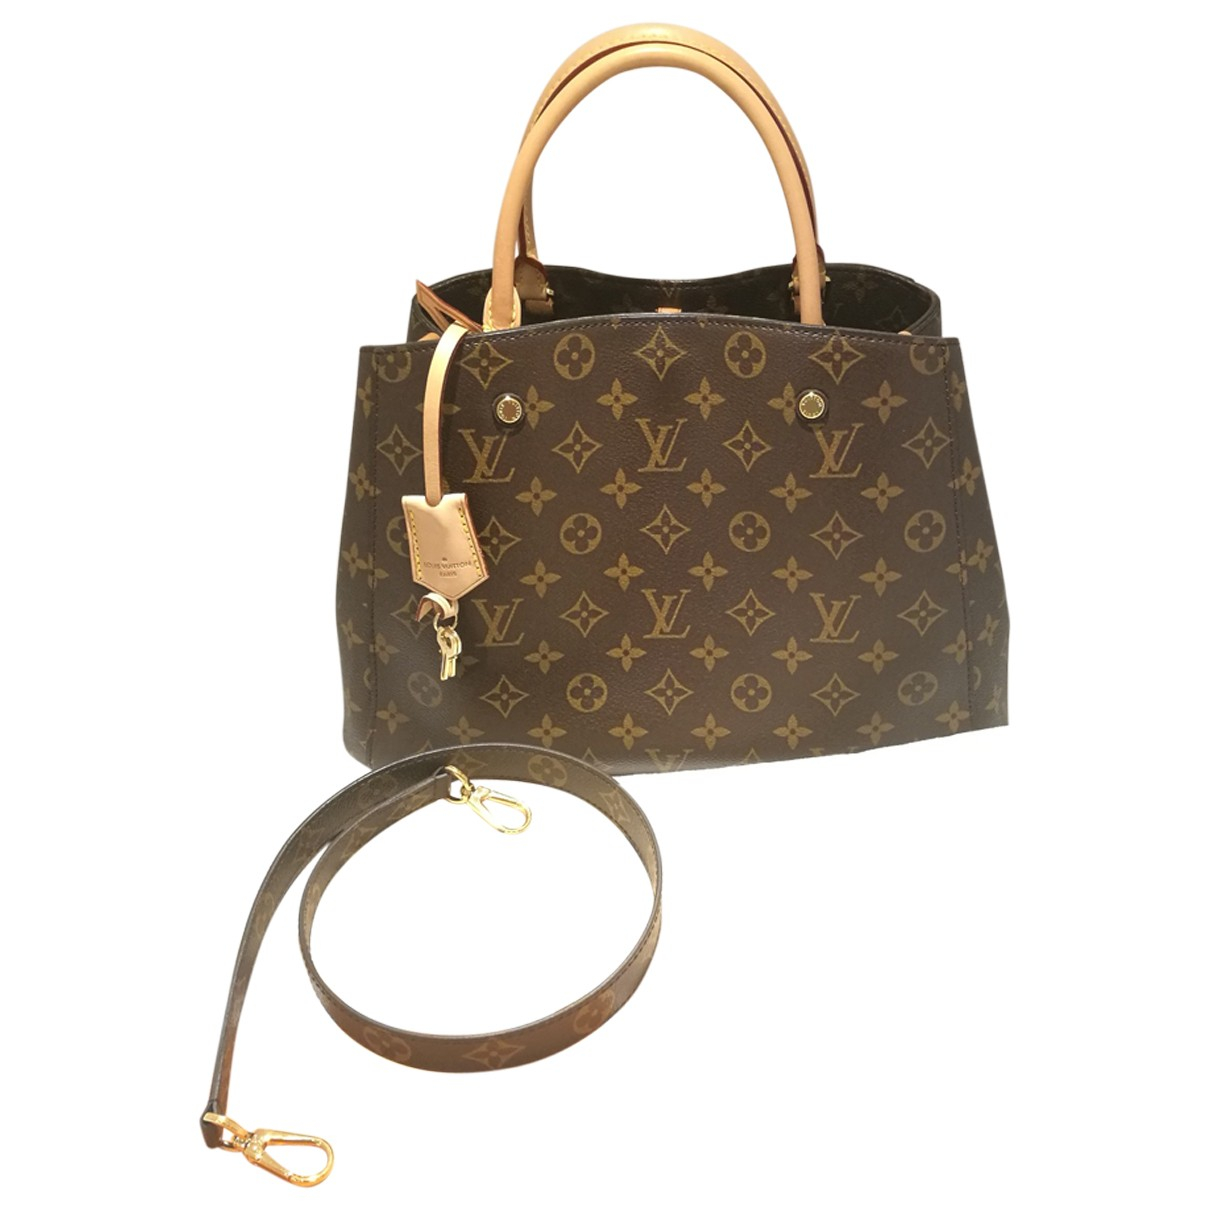 Bolso  Montaigne de Lona Louis Vuitton